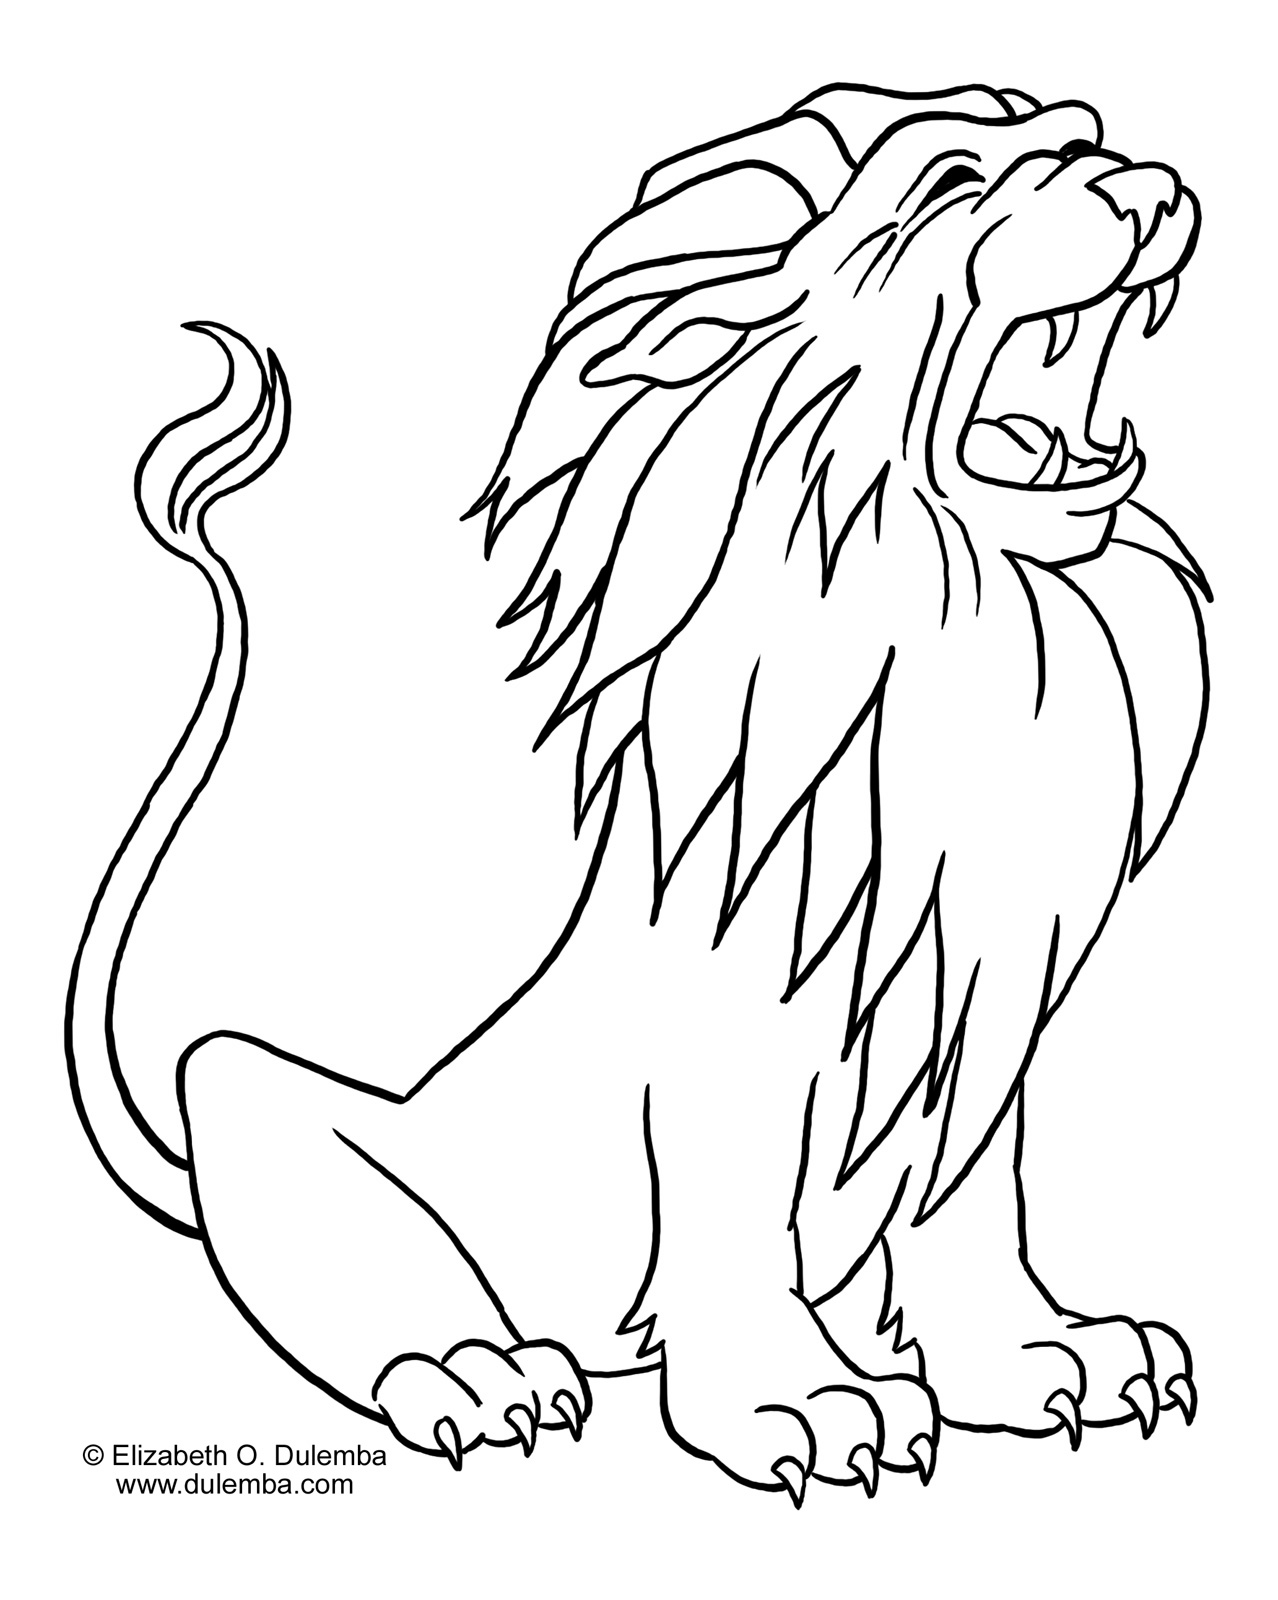 coloring lion color lion coloring pages to download and print for free coloring lion color